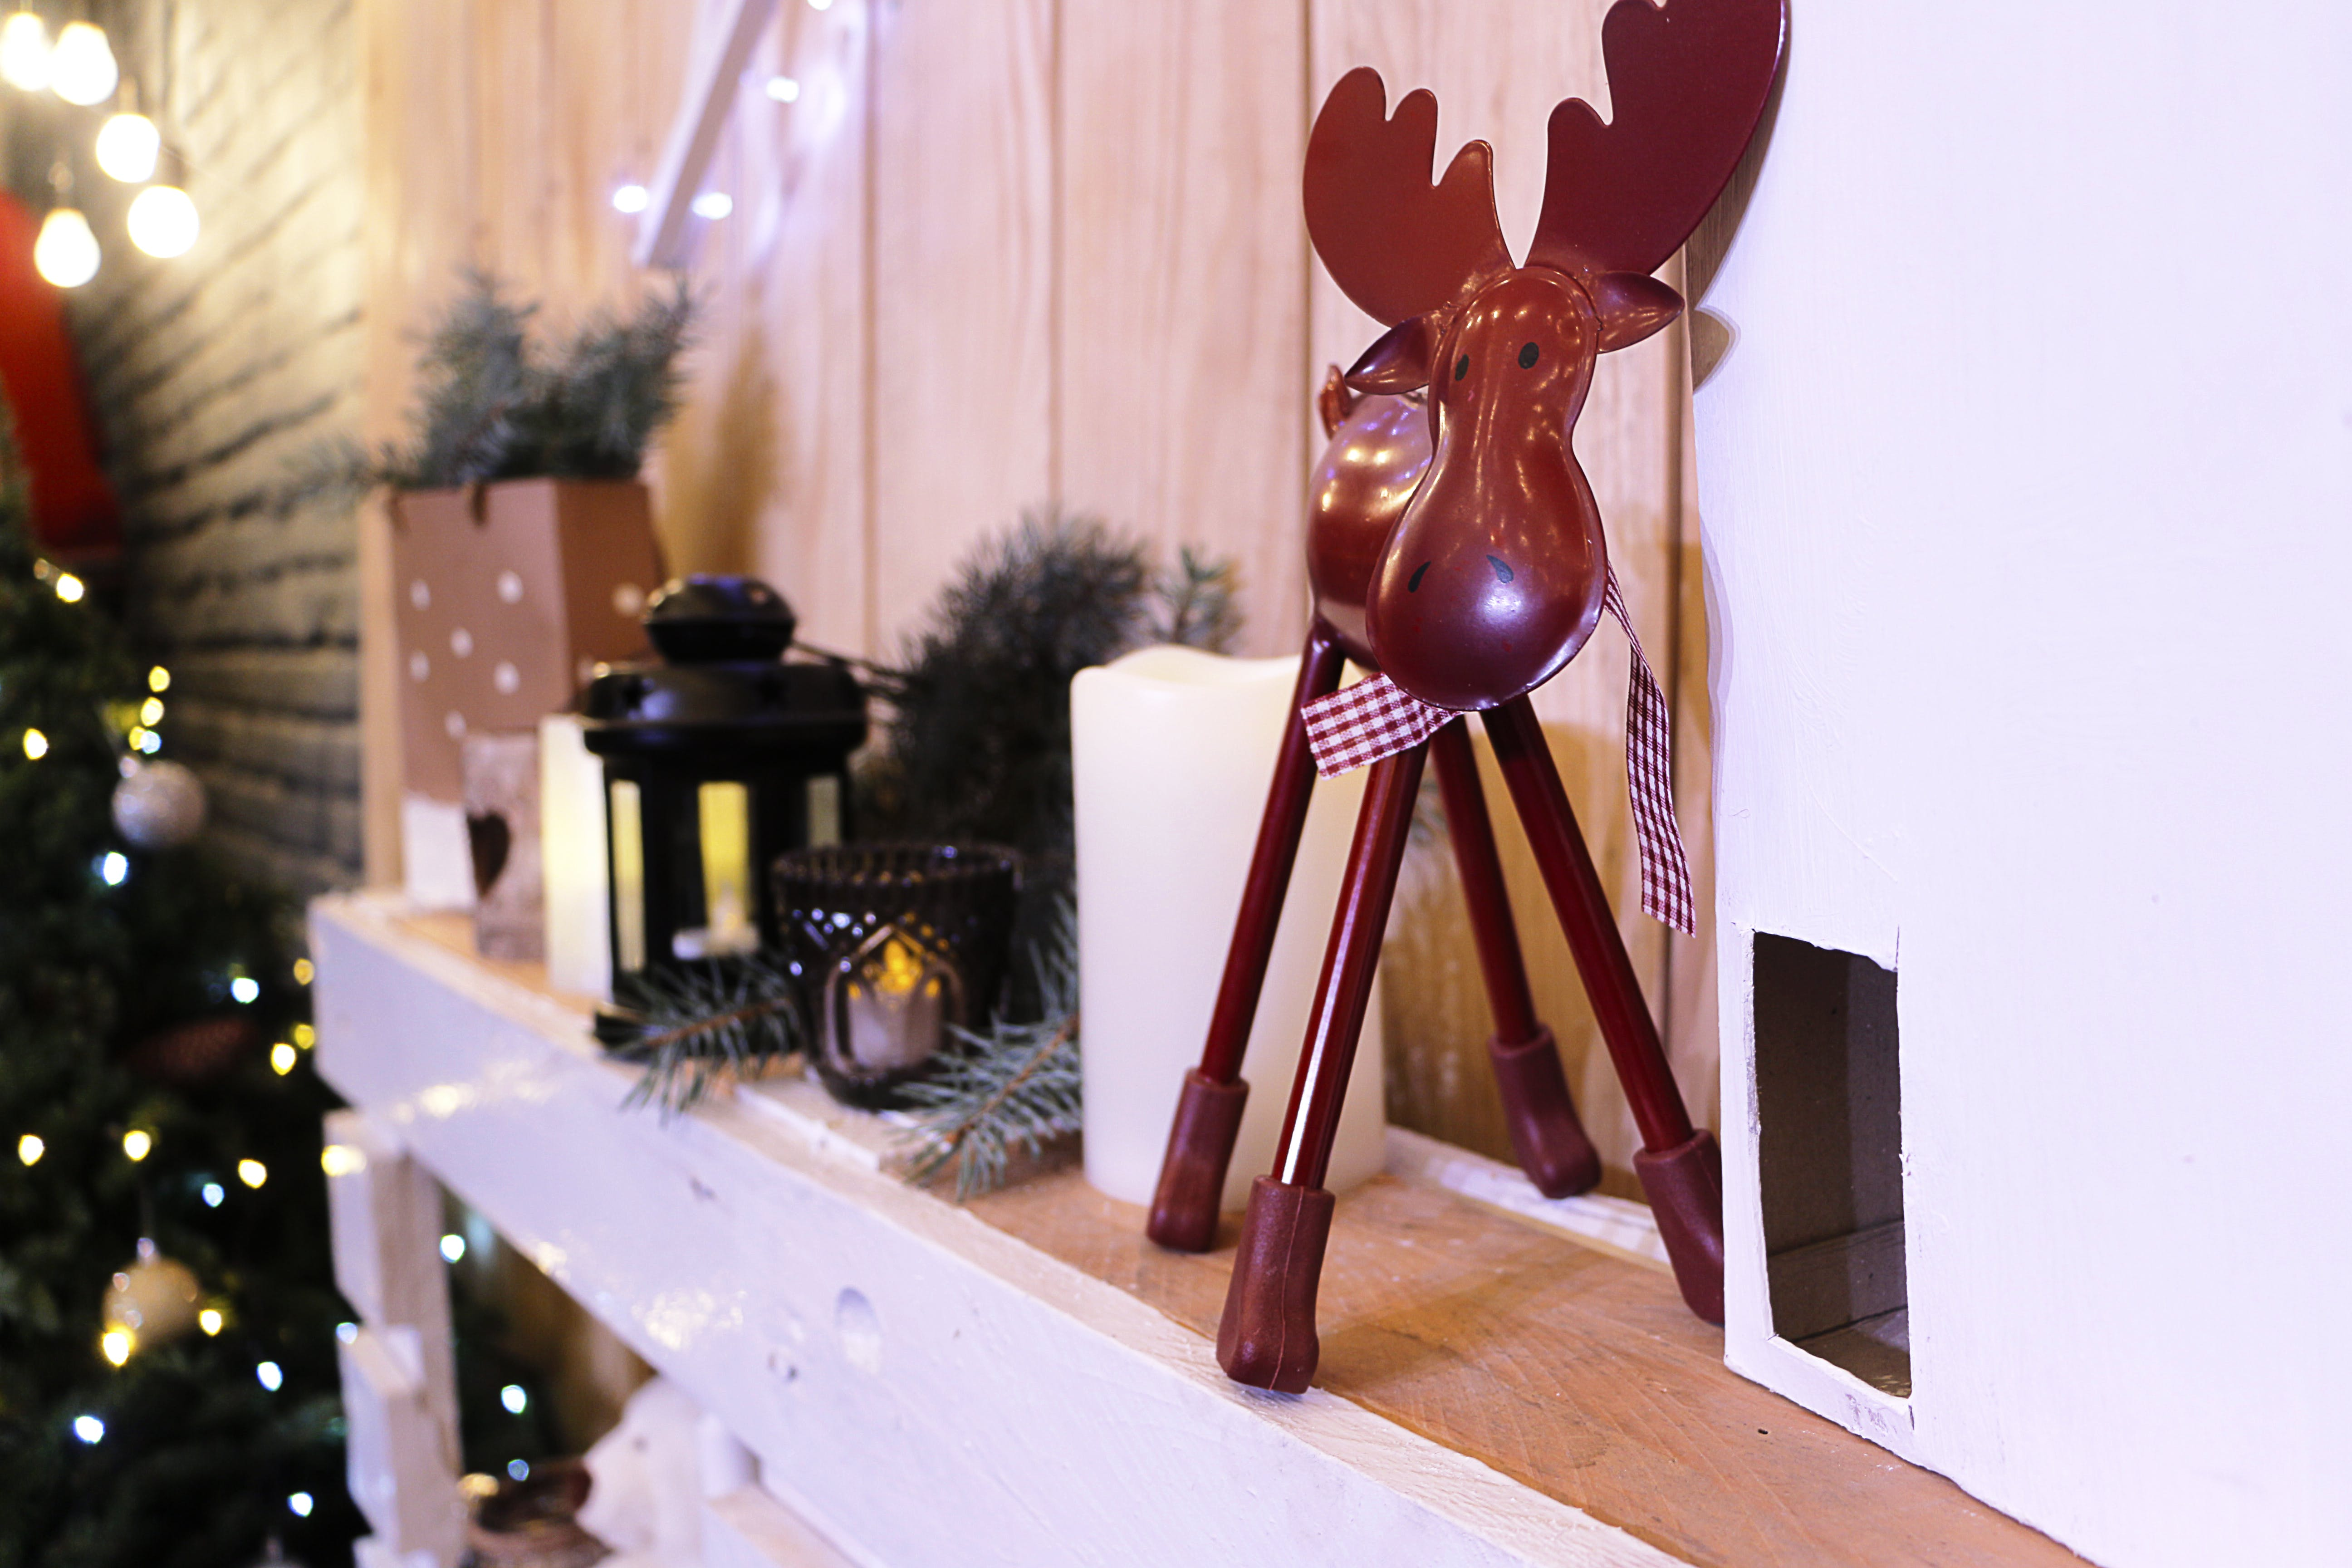 Reindeer Metal Ornament on Shelf